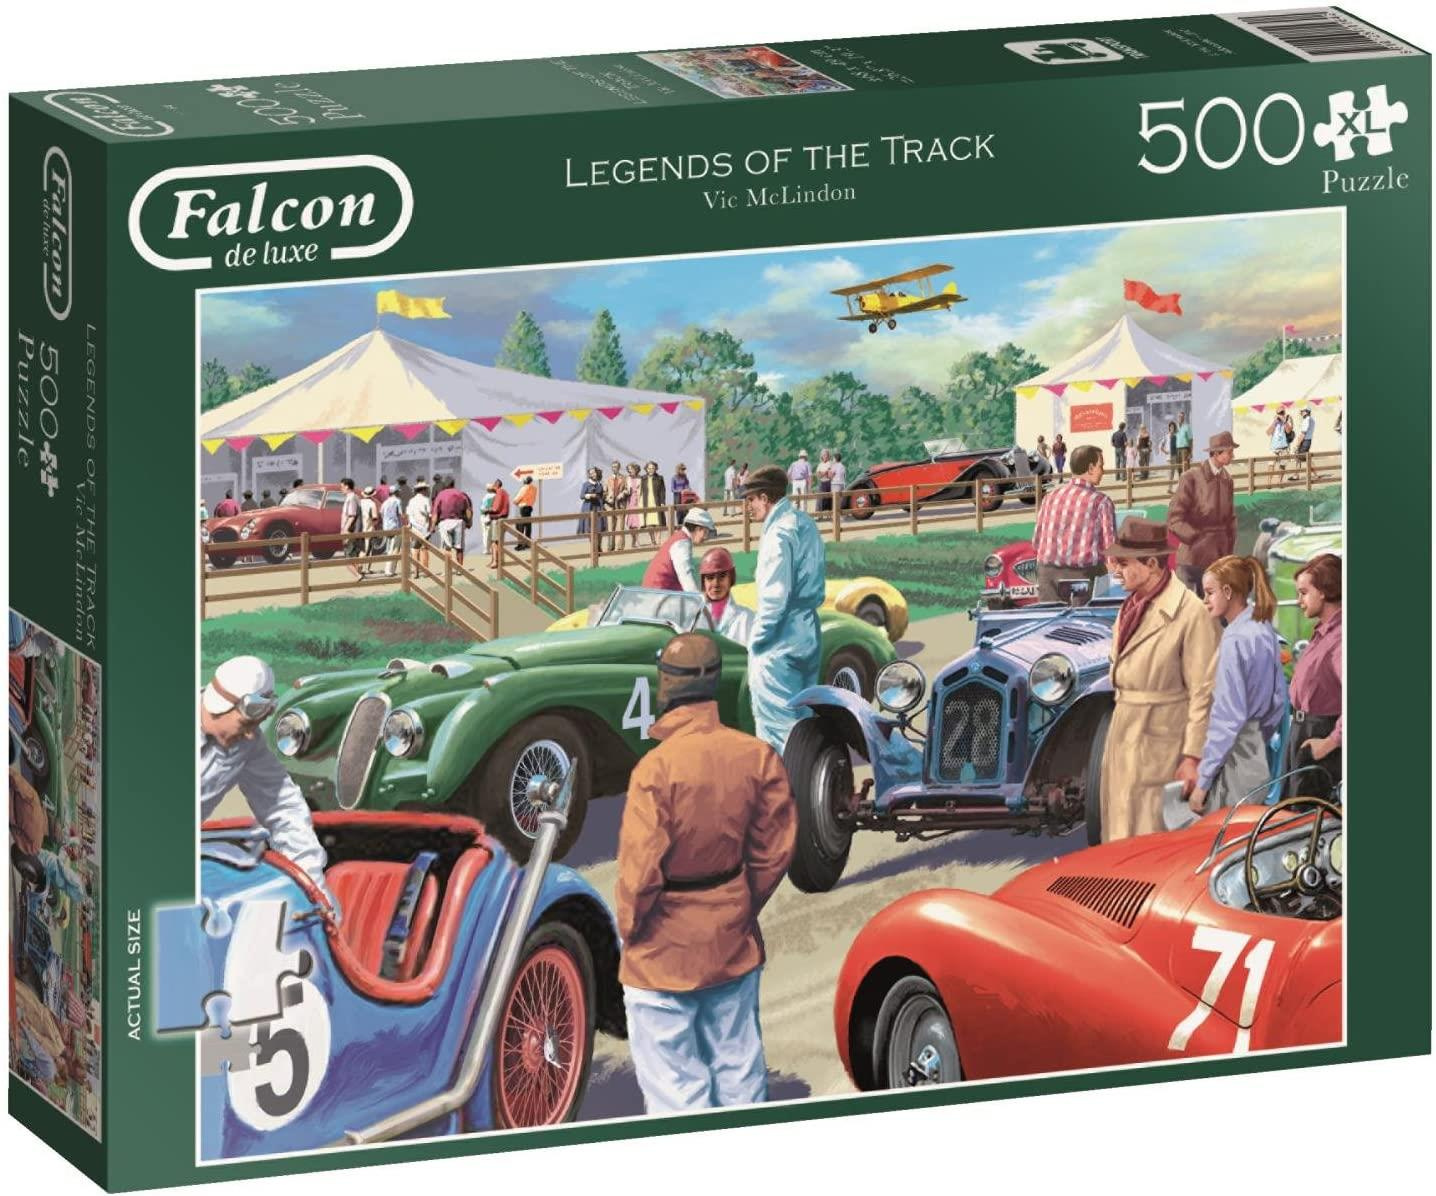 Falcon de luxe 11164- Legends of The Track - 500 XL Piece Jigsaw Puzzle